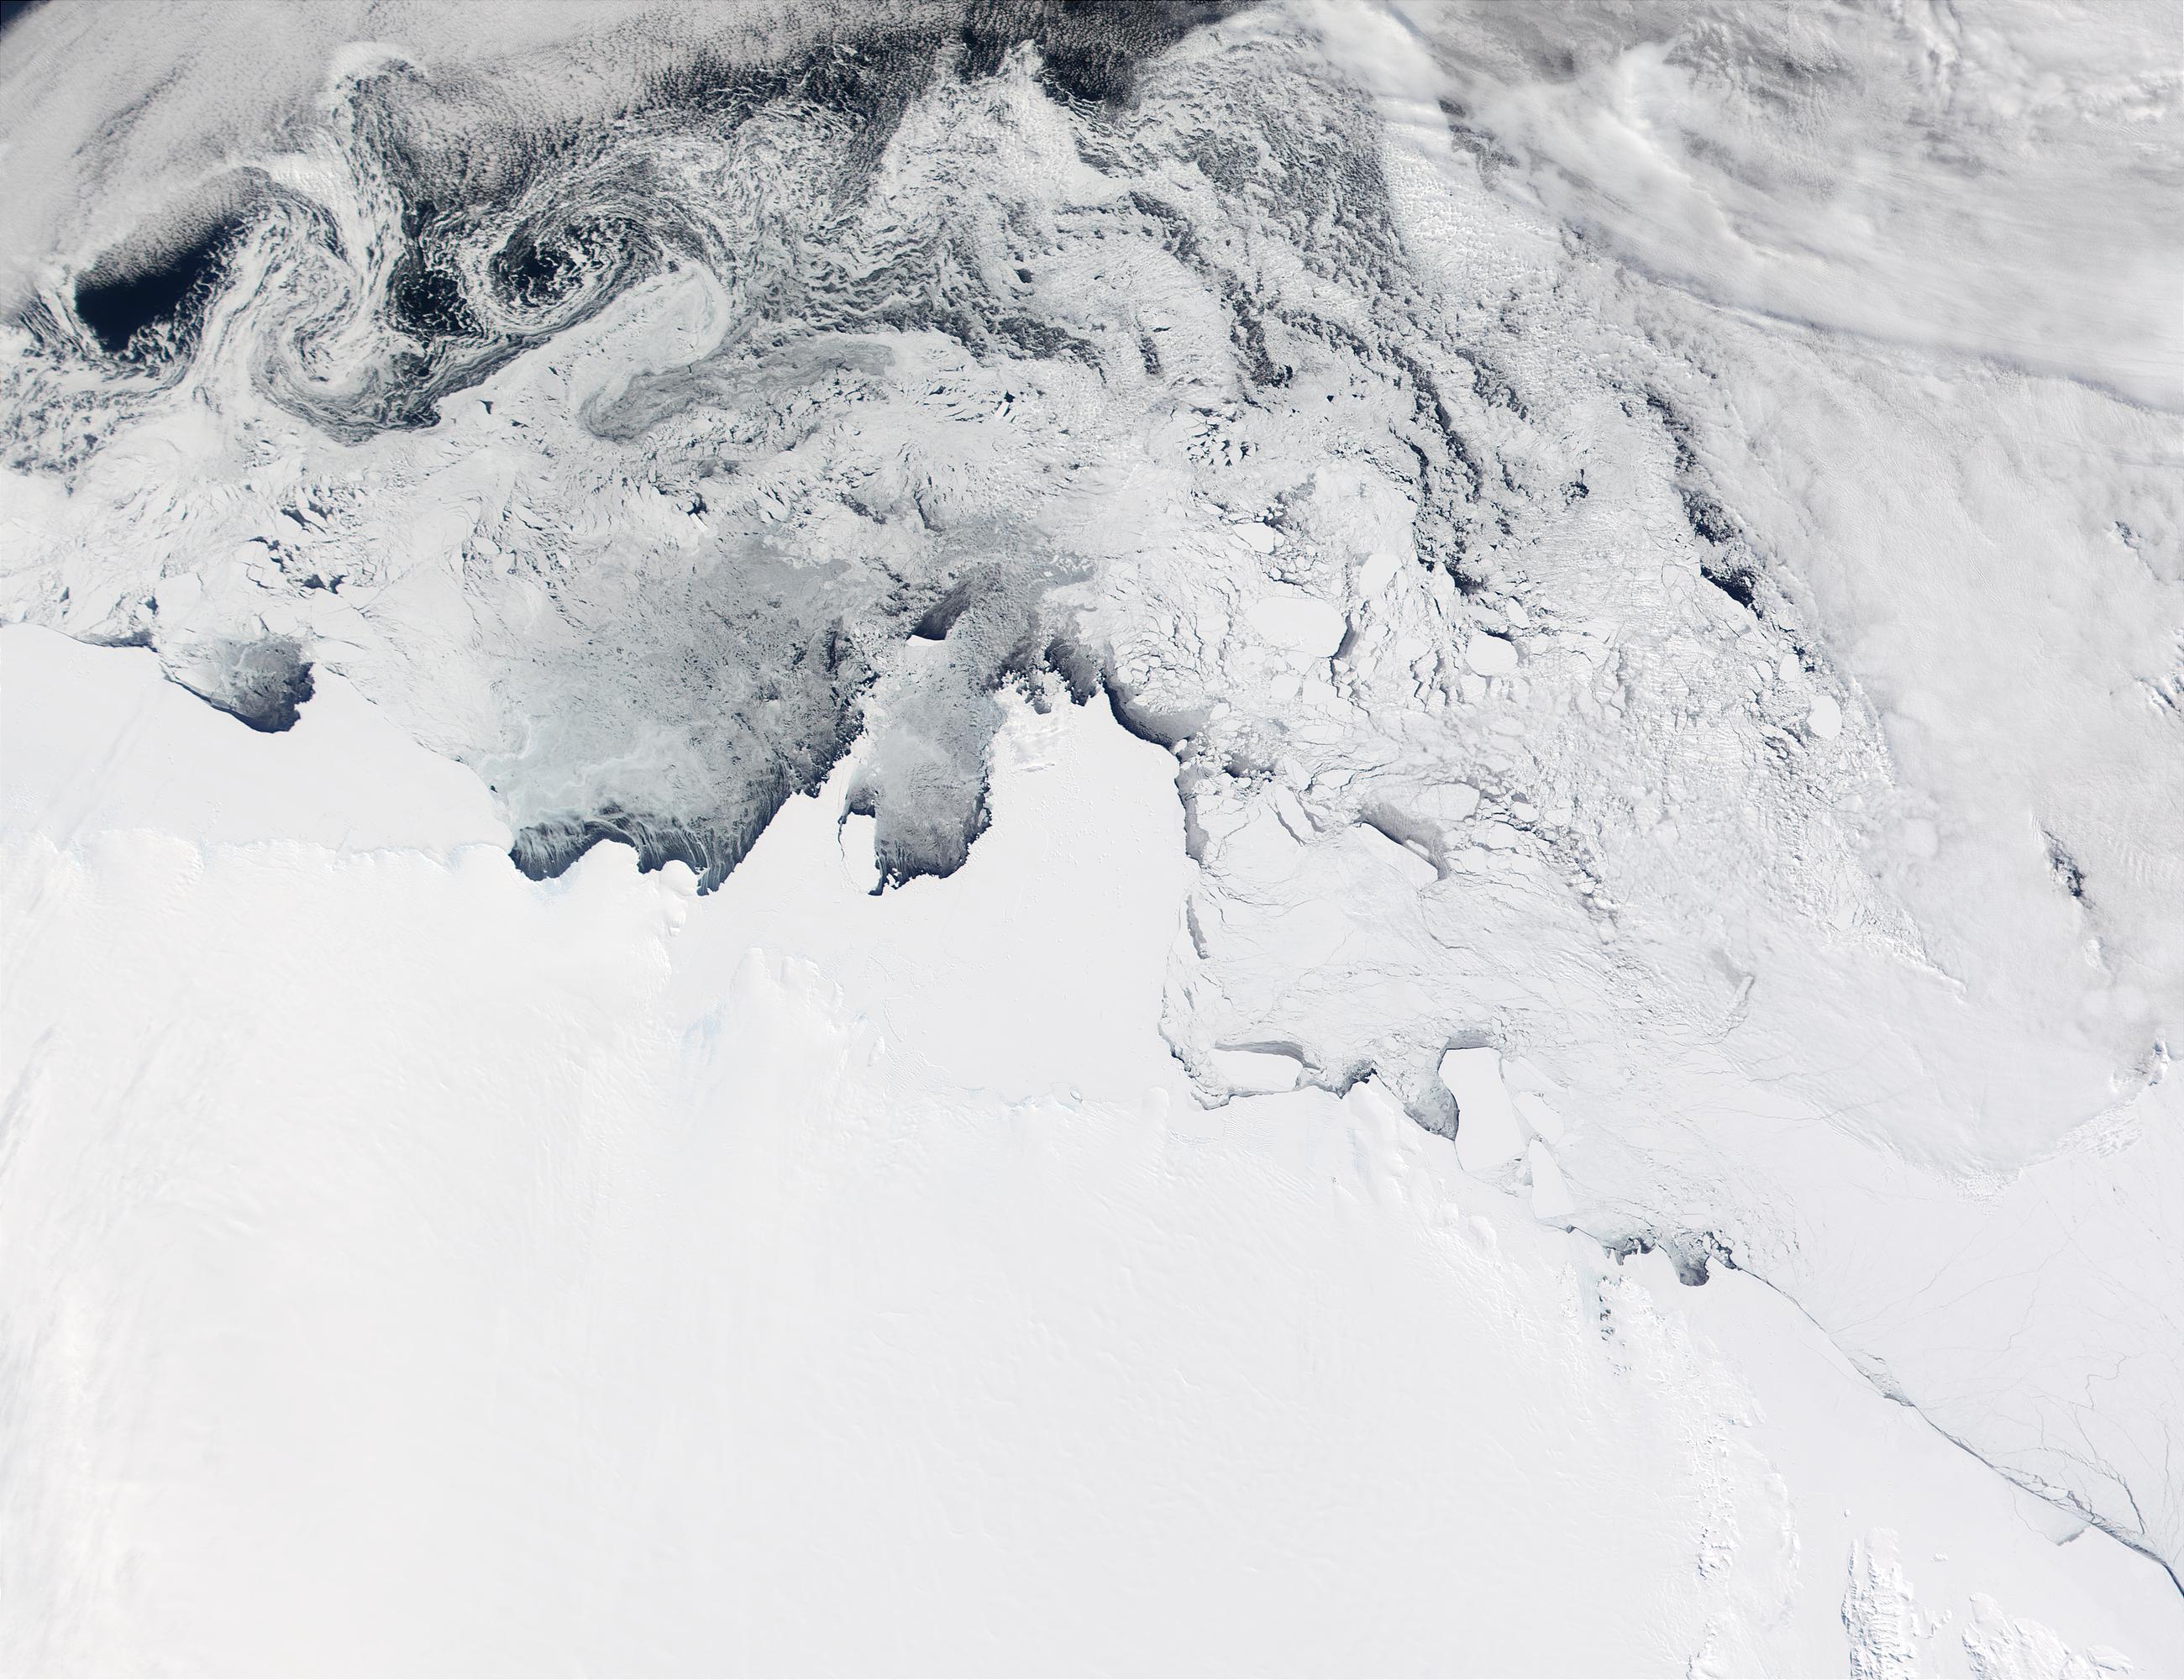 Adelie Coast, George V Coast, Oates Coast, and Pennell Coast, Antarctica - related image preview